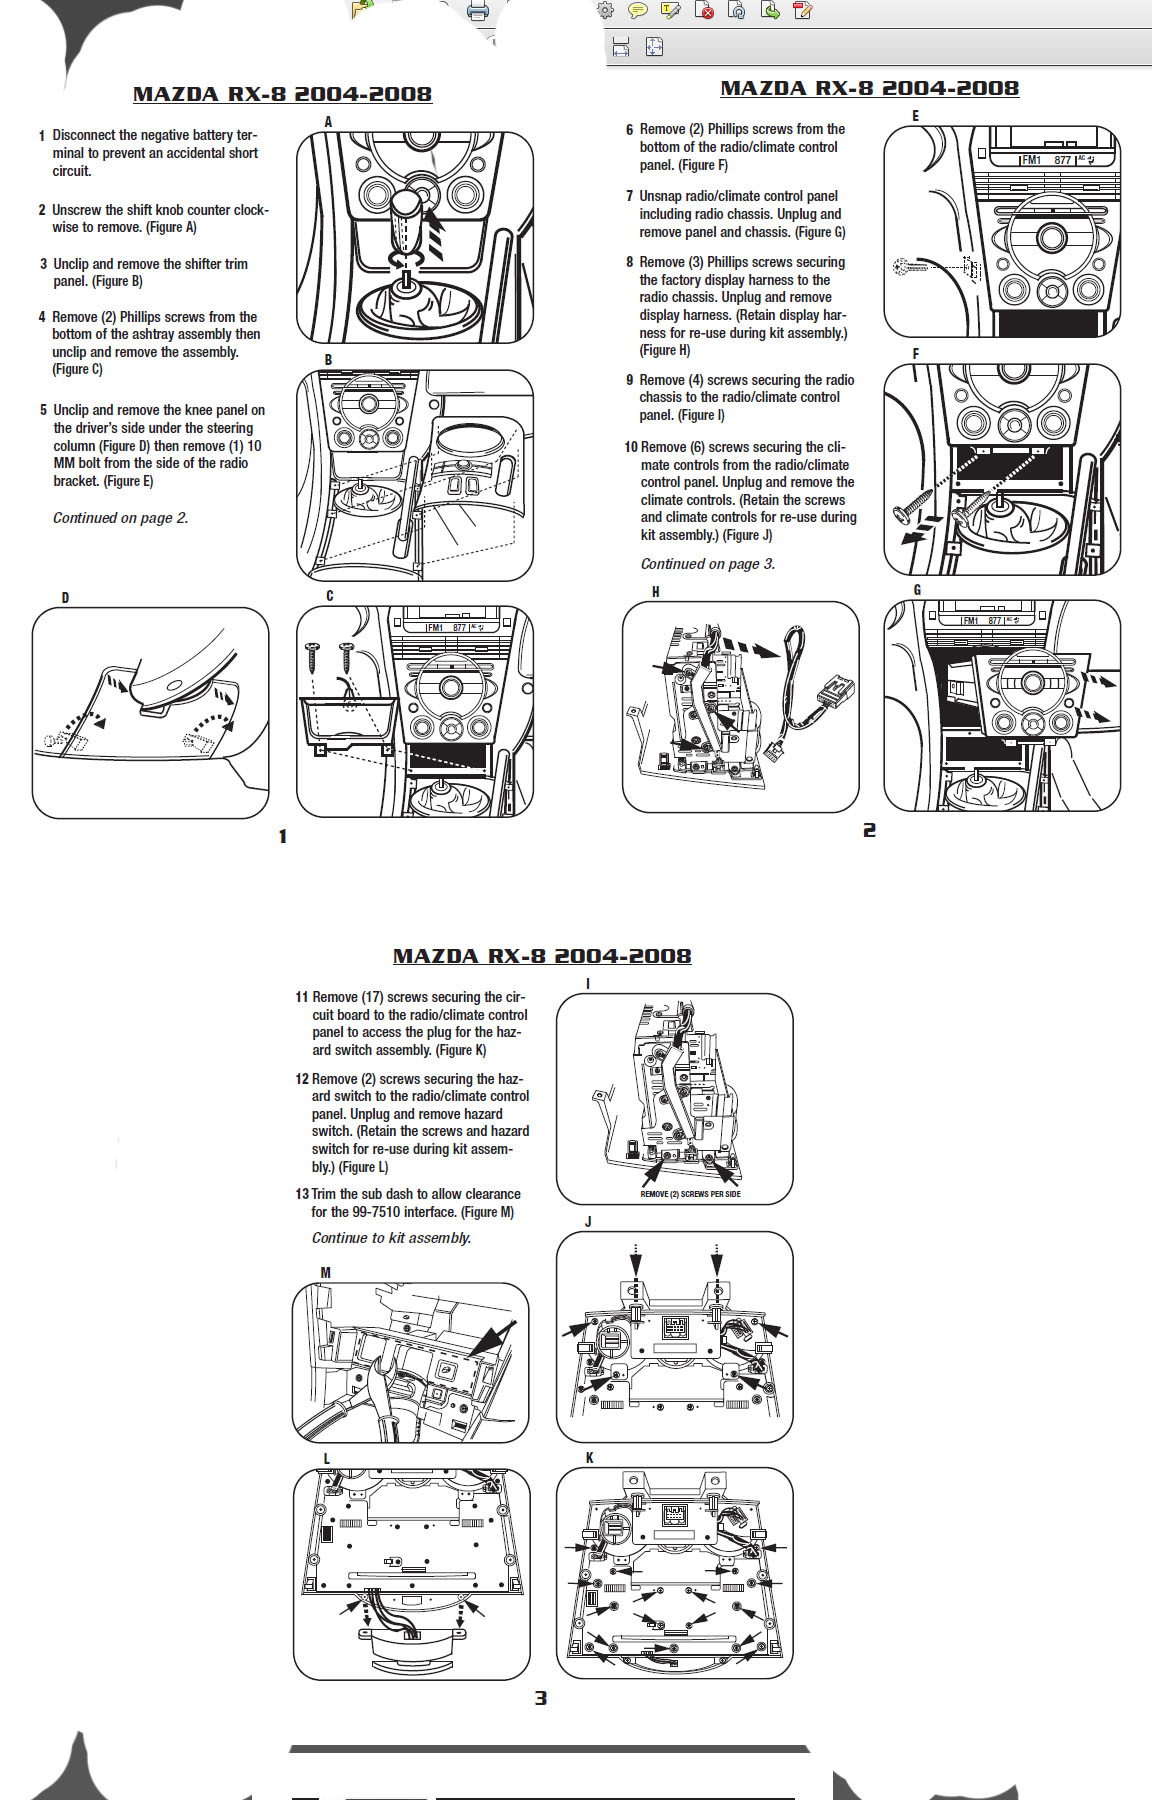 2004 Mazda Rx8 Stereo Wiring Diagram Manual Of Fuse Box On 6 Get Free Image About Audio